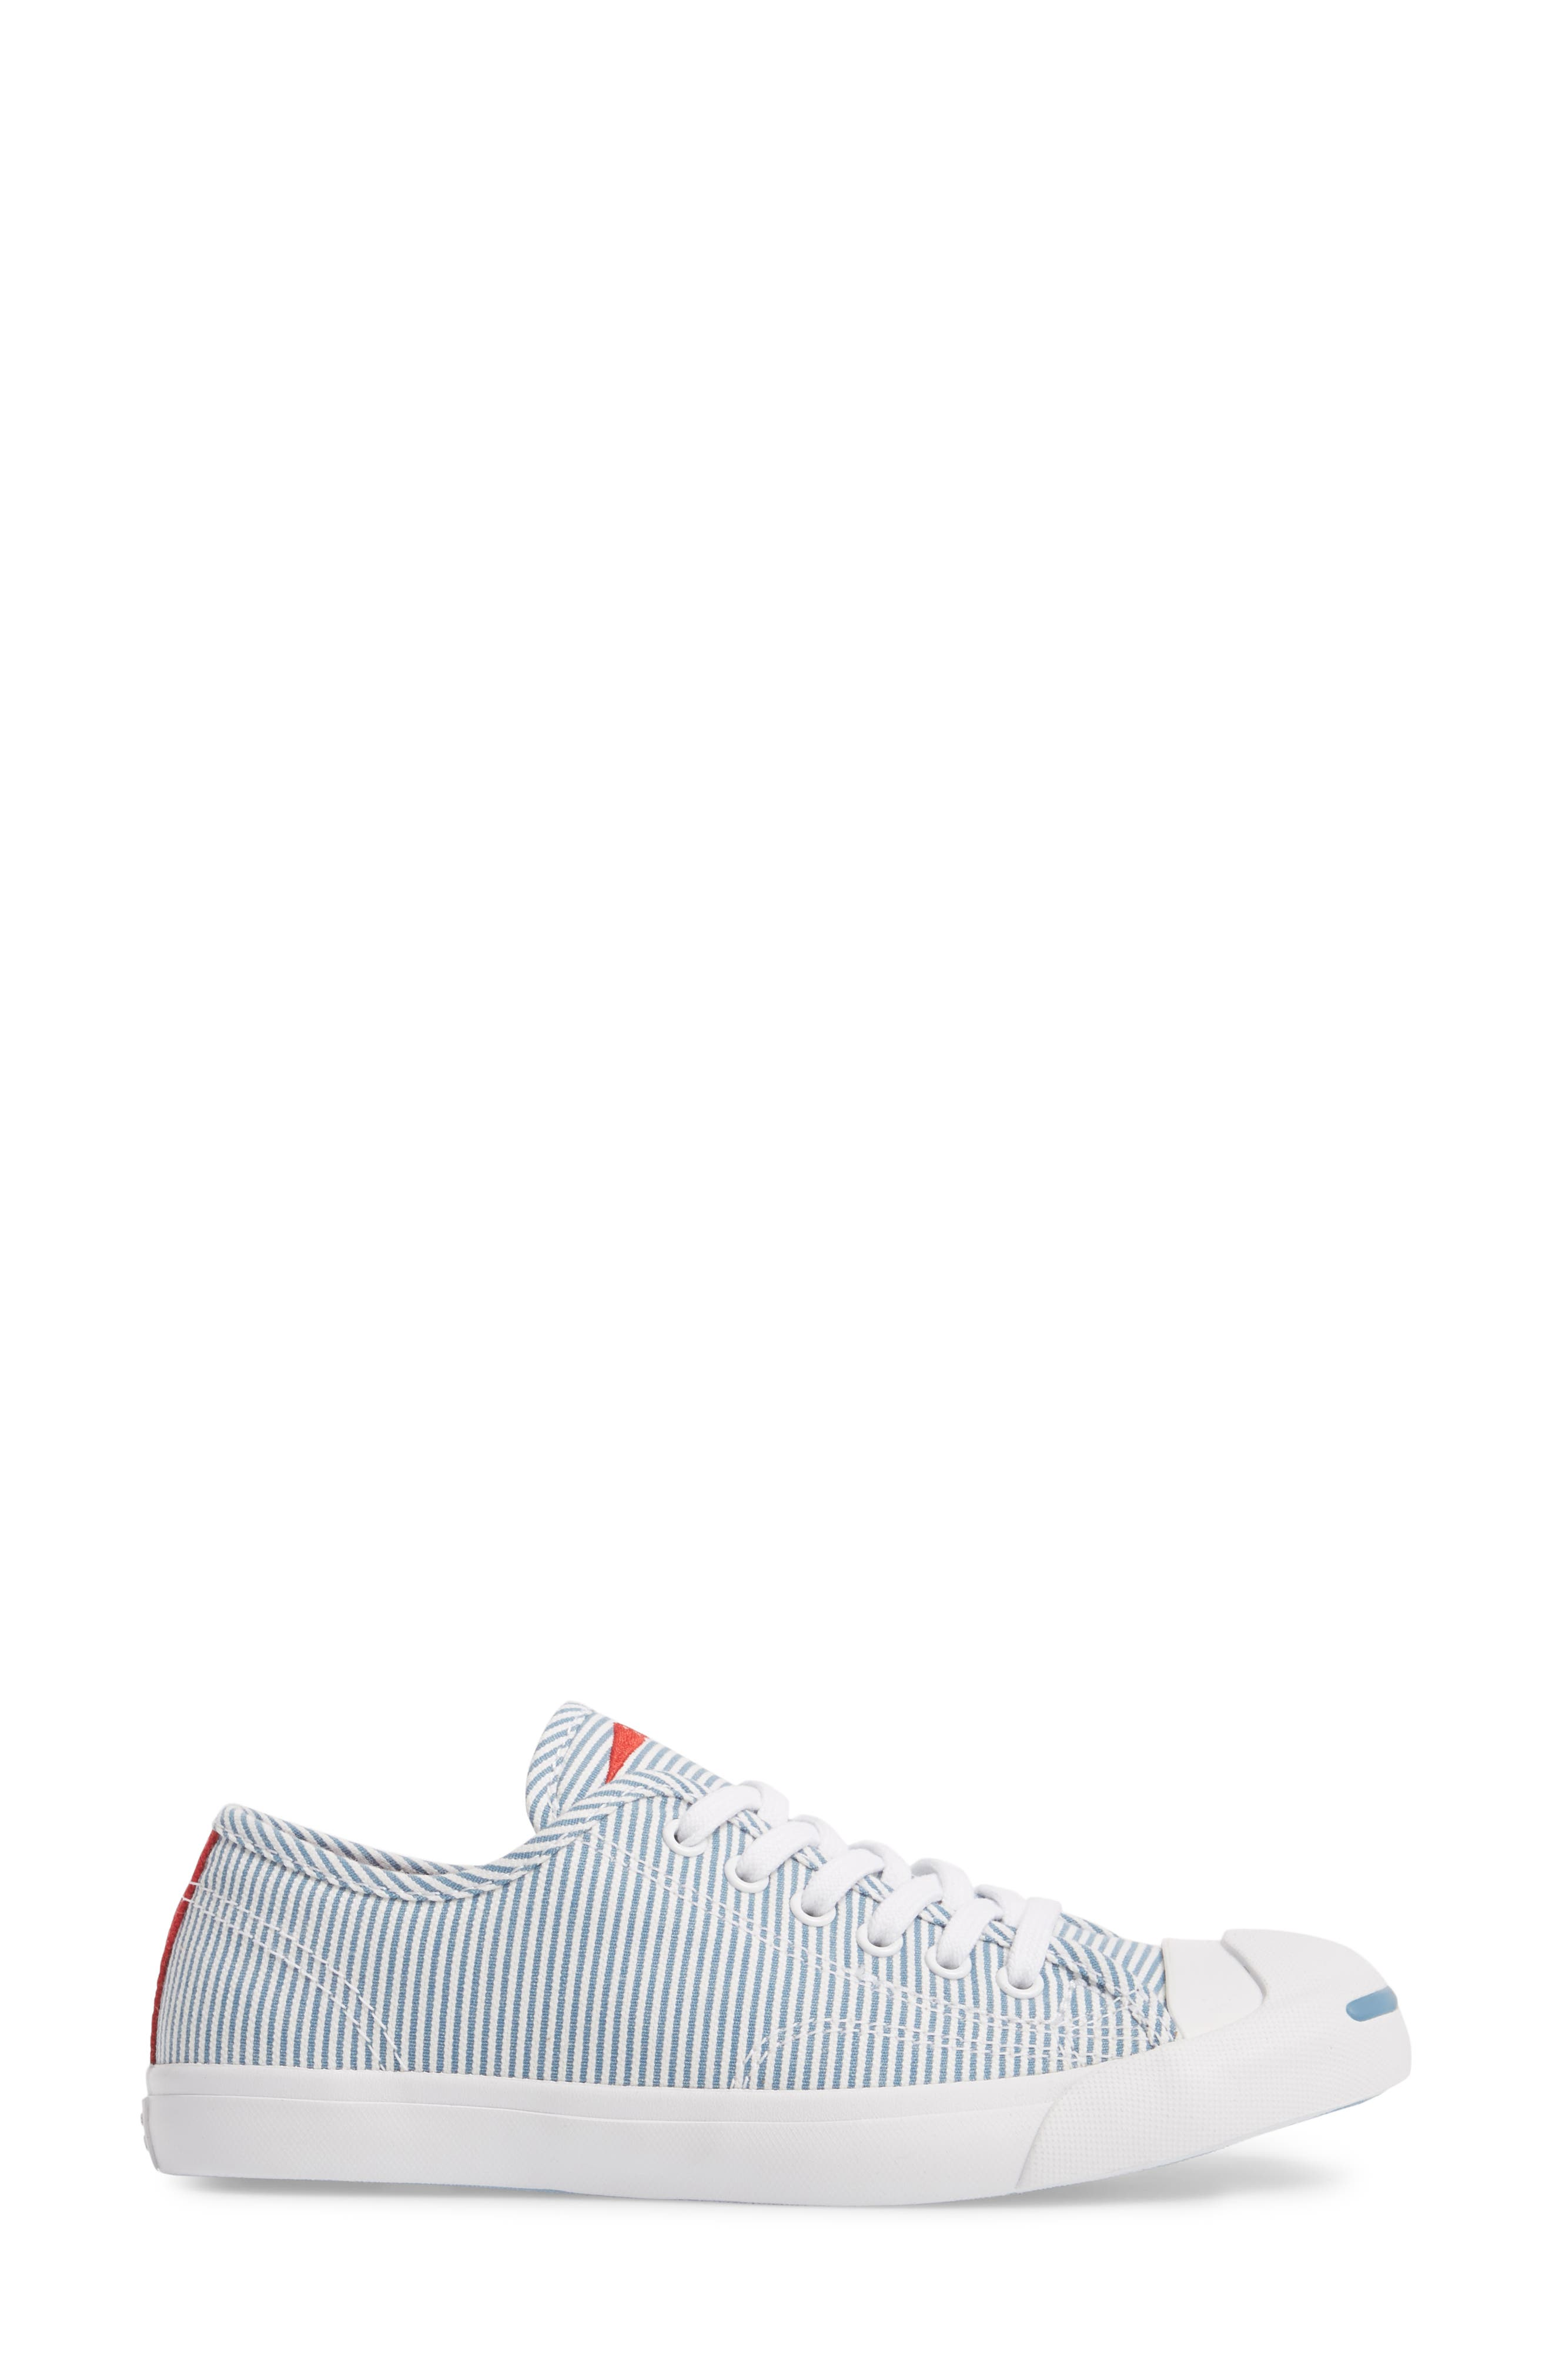 ,                             Jack Purcell Low Top Sneaker,                             Alternate thumbnail 33, color,                             402